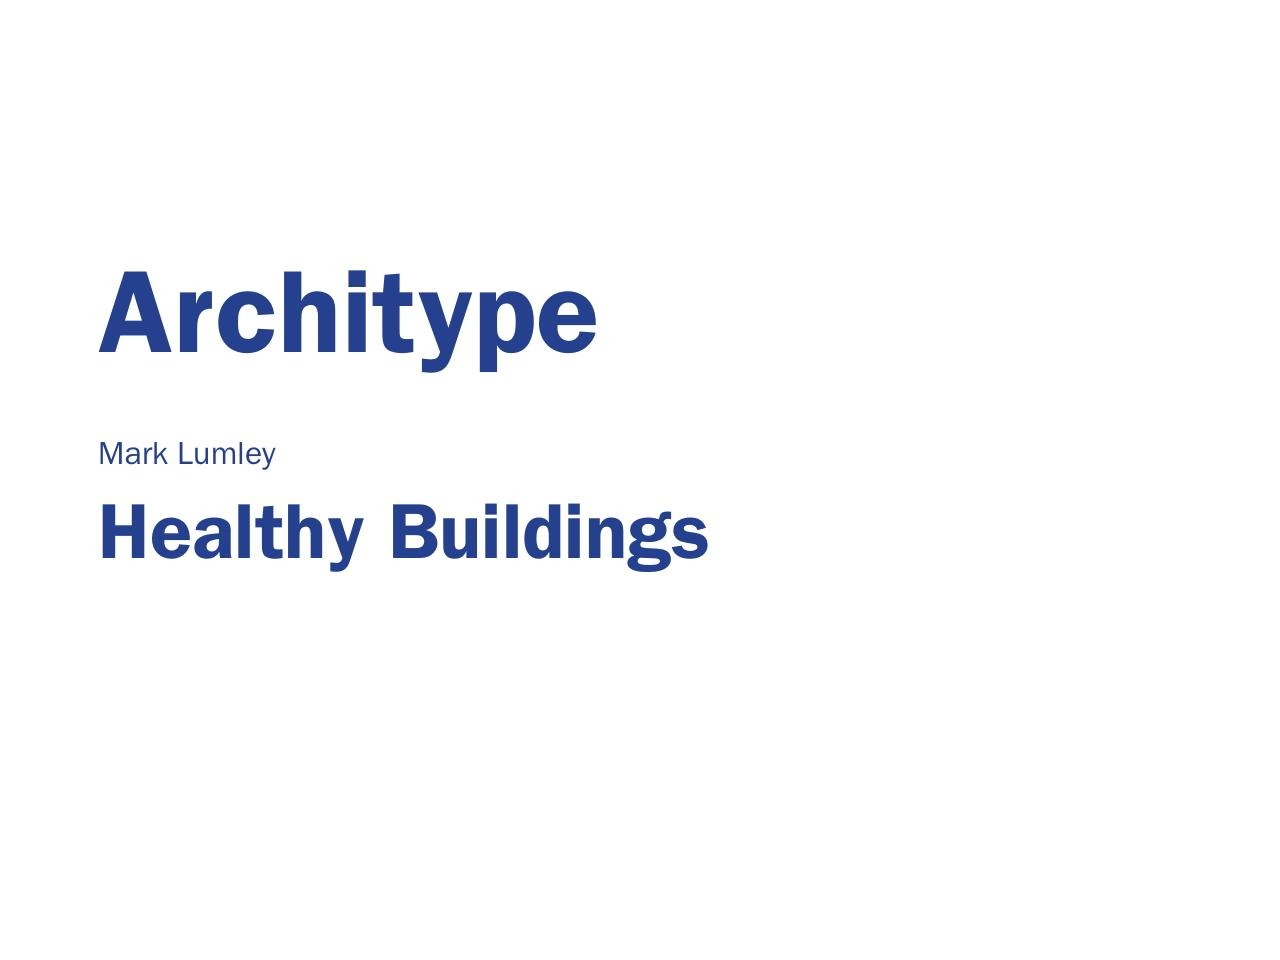 Mark Lumley, Architype - Healthy Buildings, ASBP.pdf - page 1/68